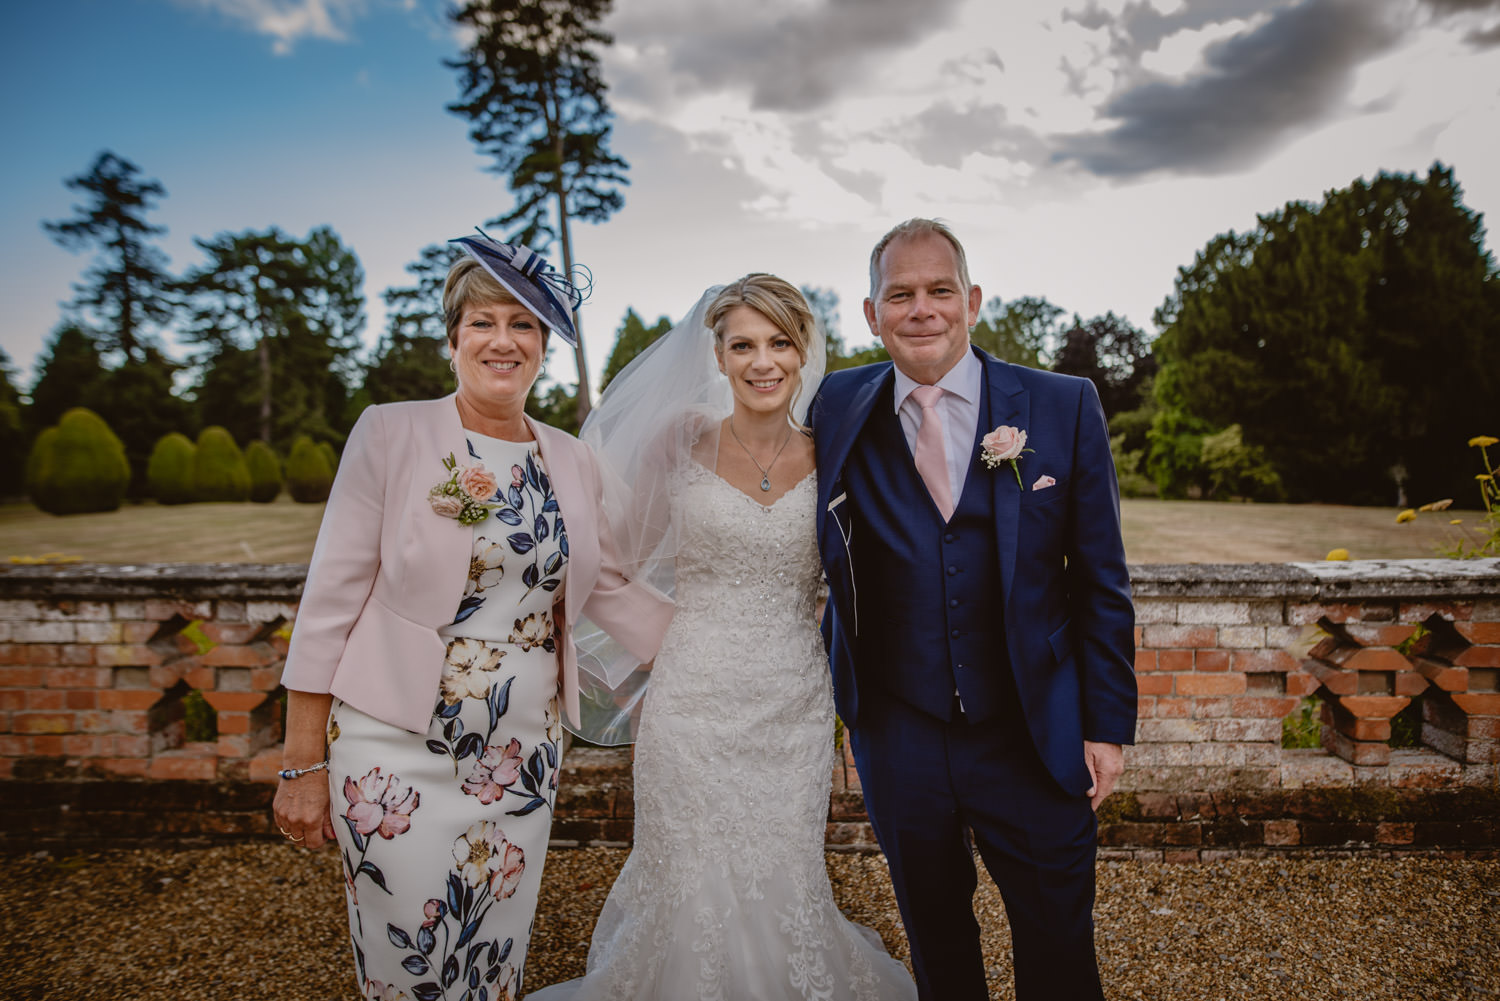 Group Photos at The Elvetham Hotel